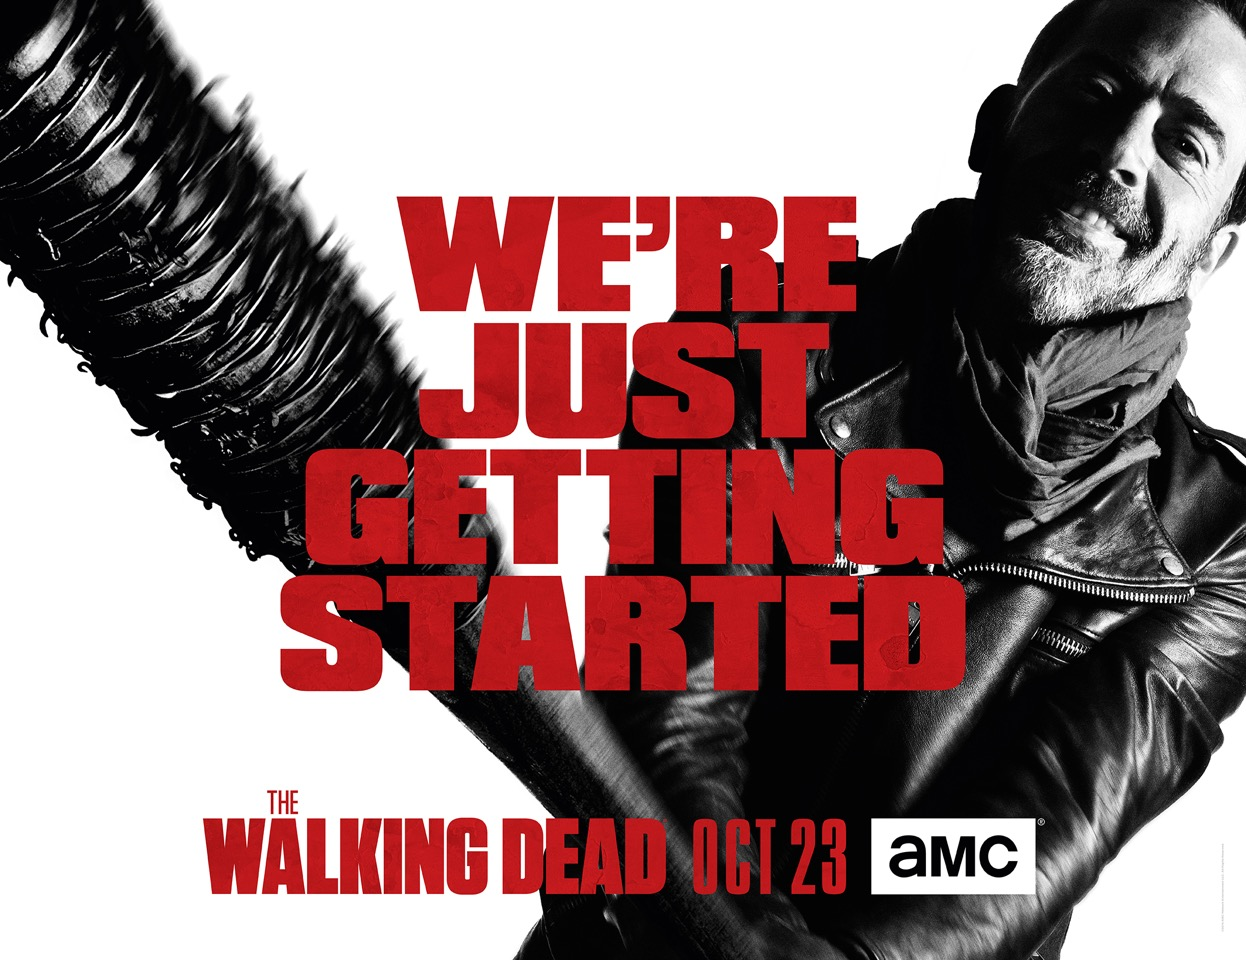 THE WALKING DEAD S07E10 720P 1080P WEB-DL